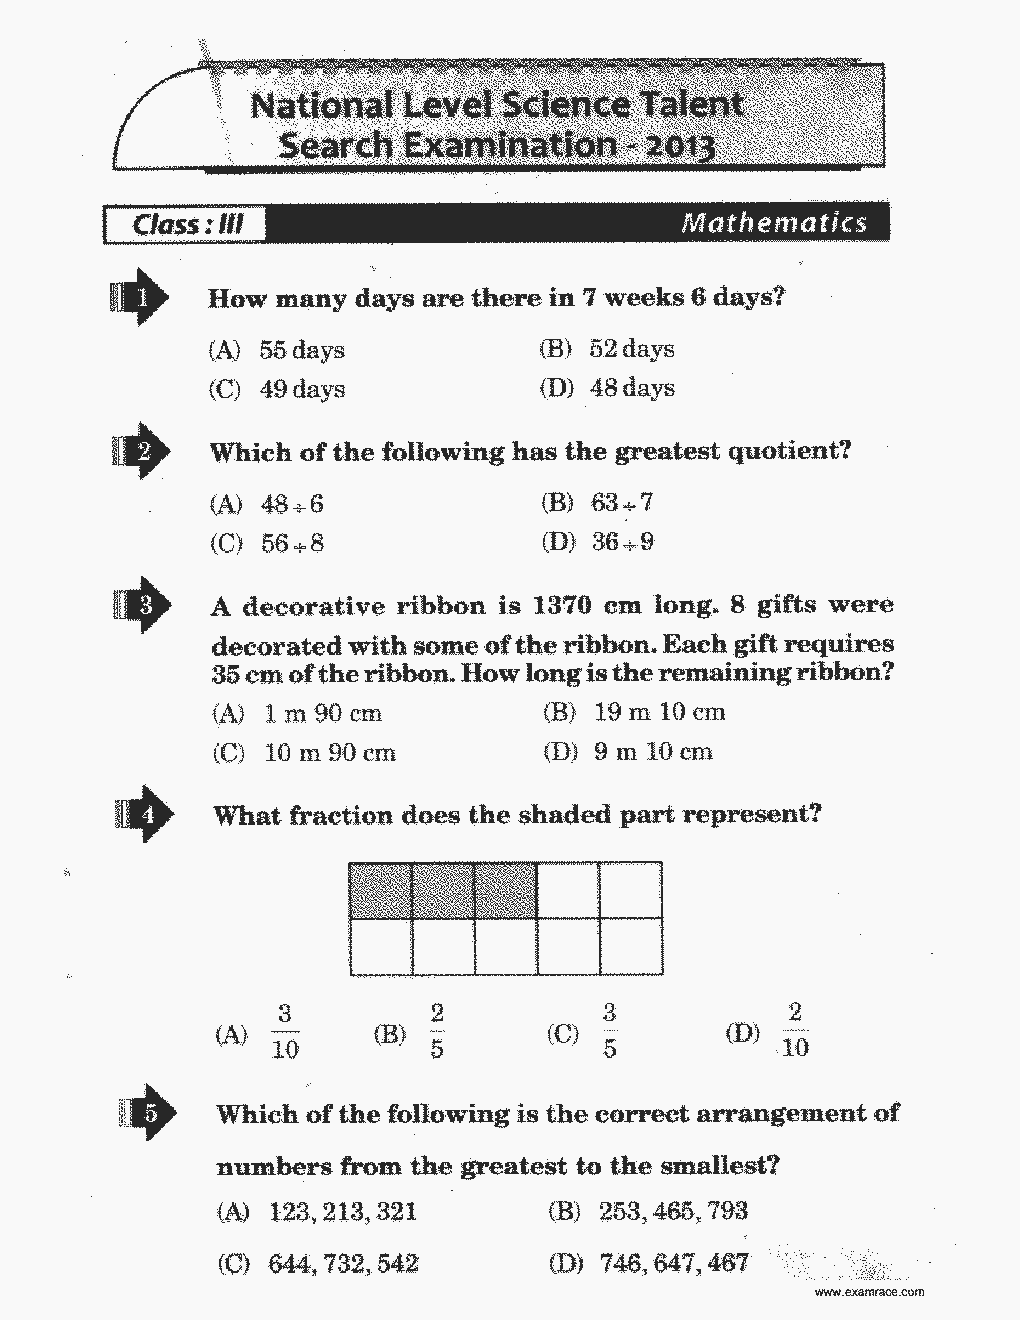 Nstse class 3 solved paper 2013 translation in hindi kannada nstse class 3 solved paper 2013 page 1 malvernweather Images